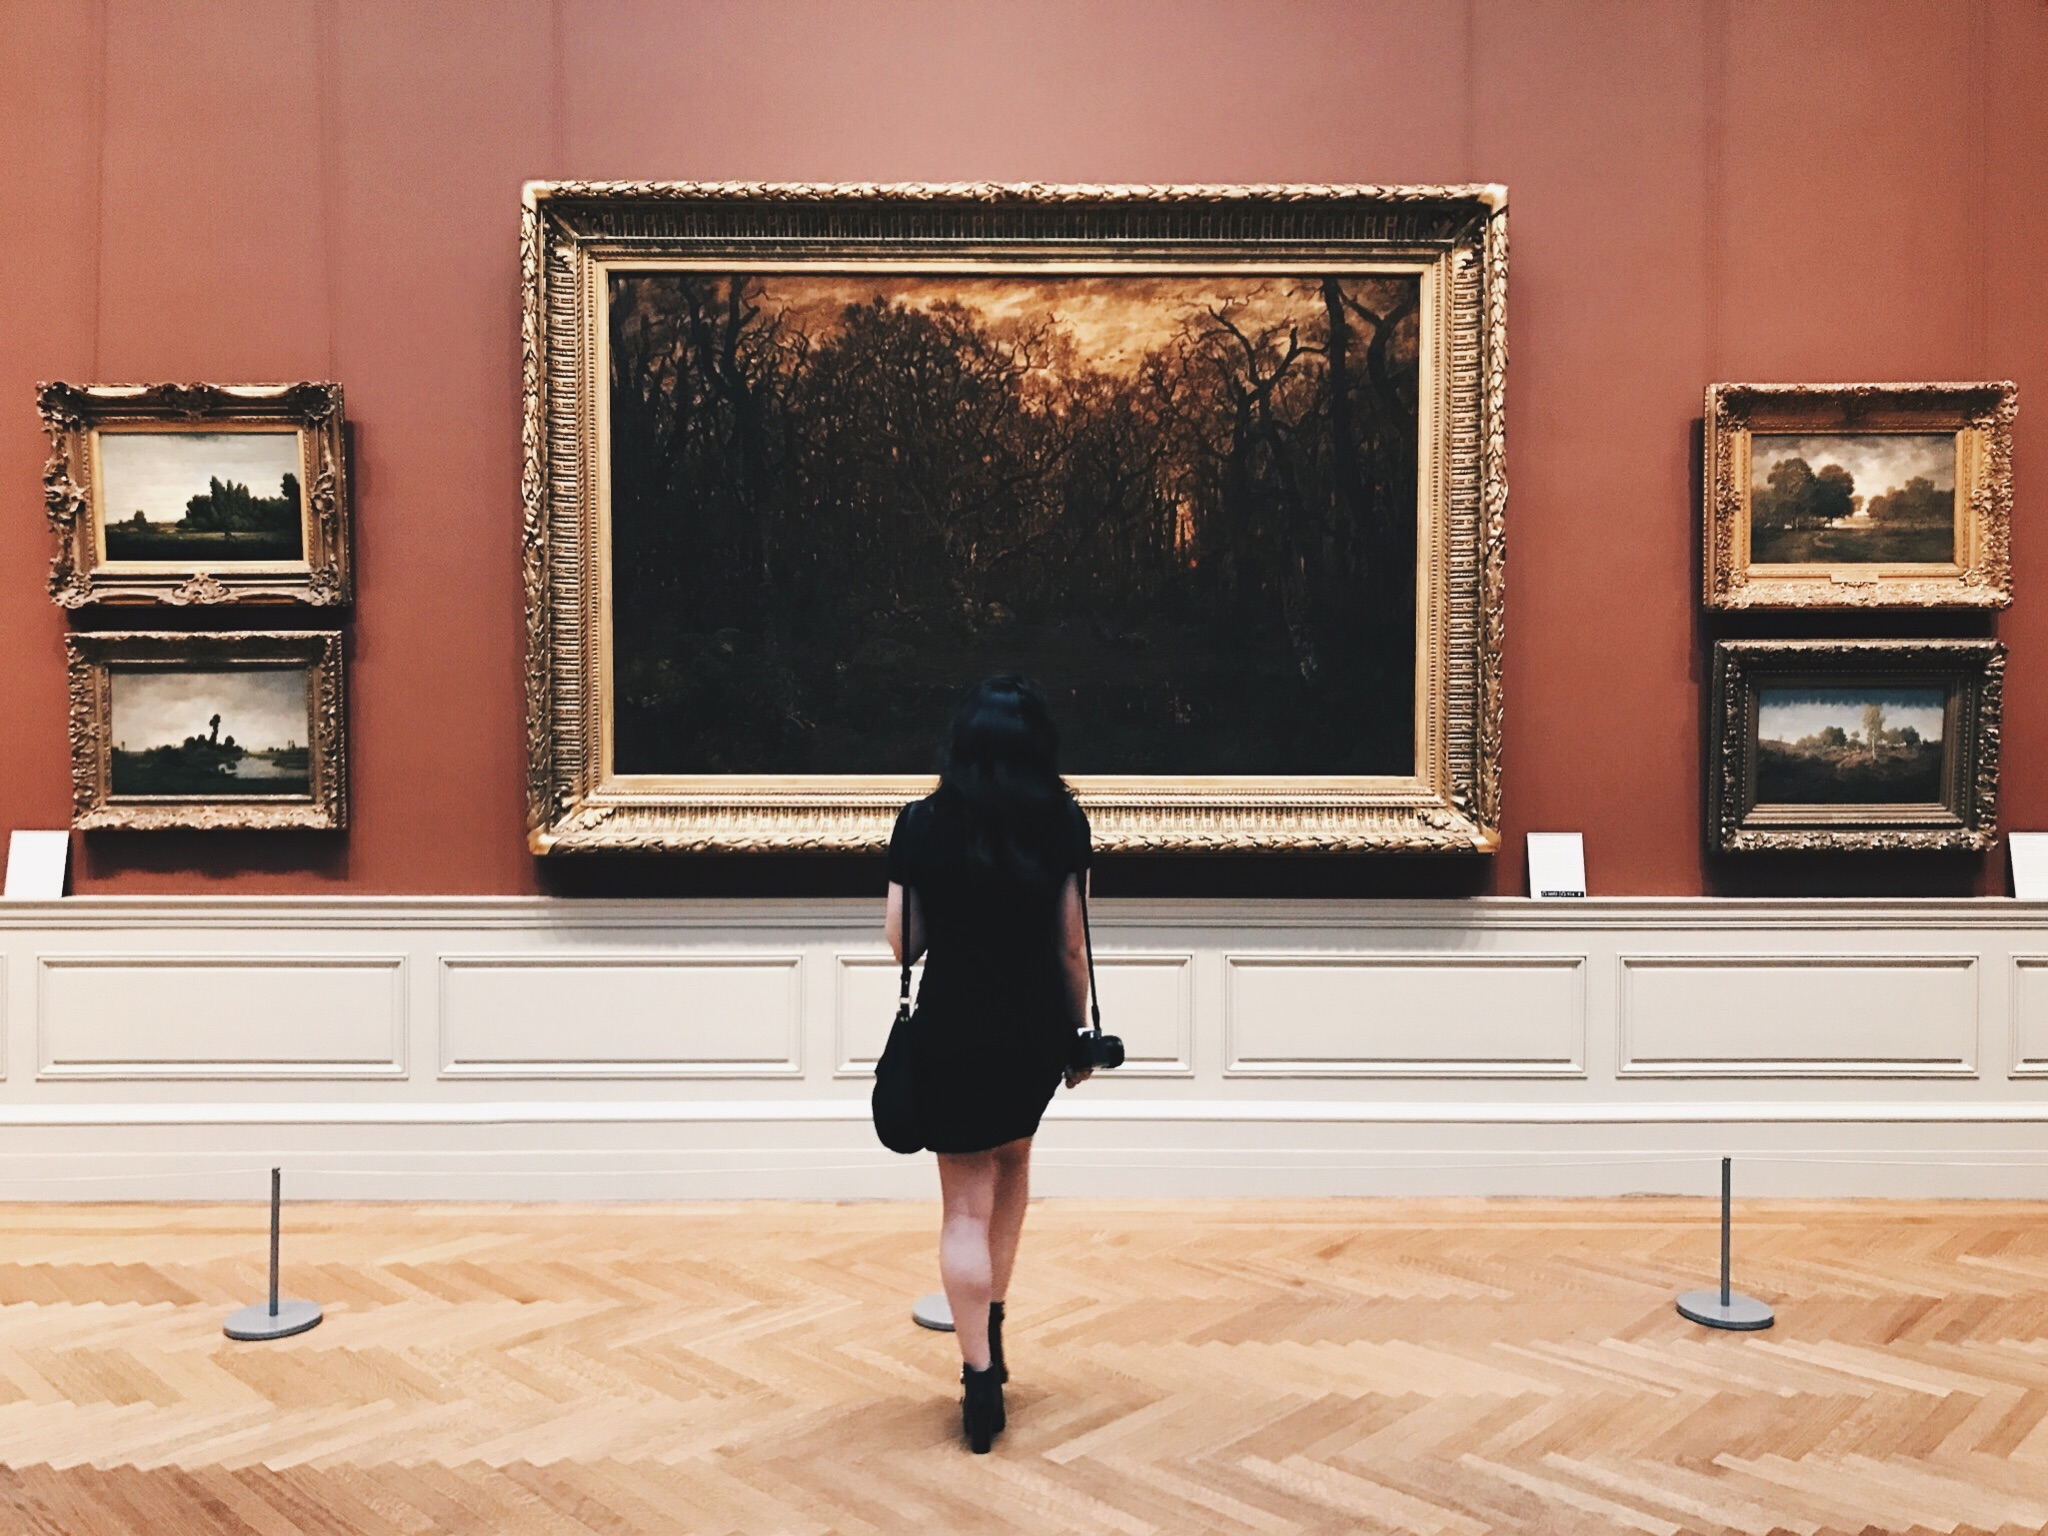 I could almost start a series just on photos of the back of my head while at art museums. No joke. Ranging from the age of 8 all the way up to now at 23